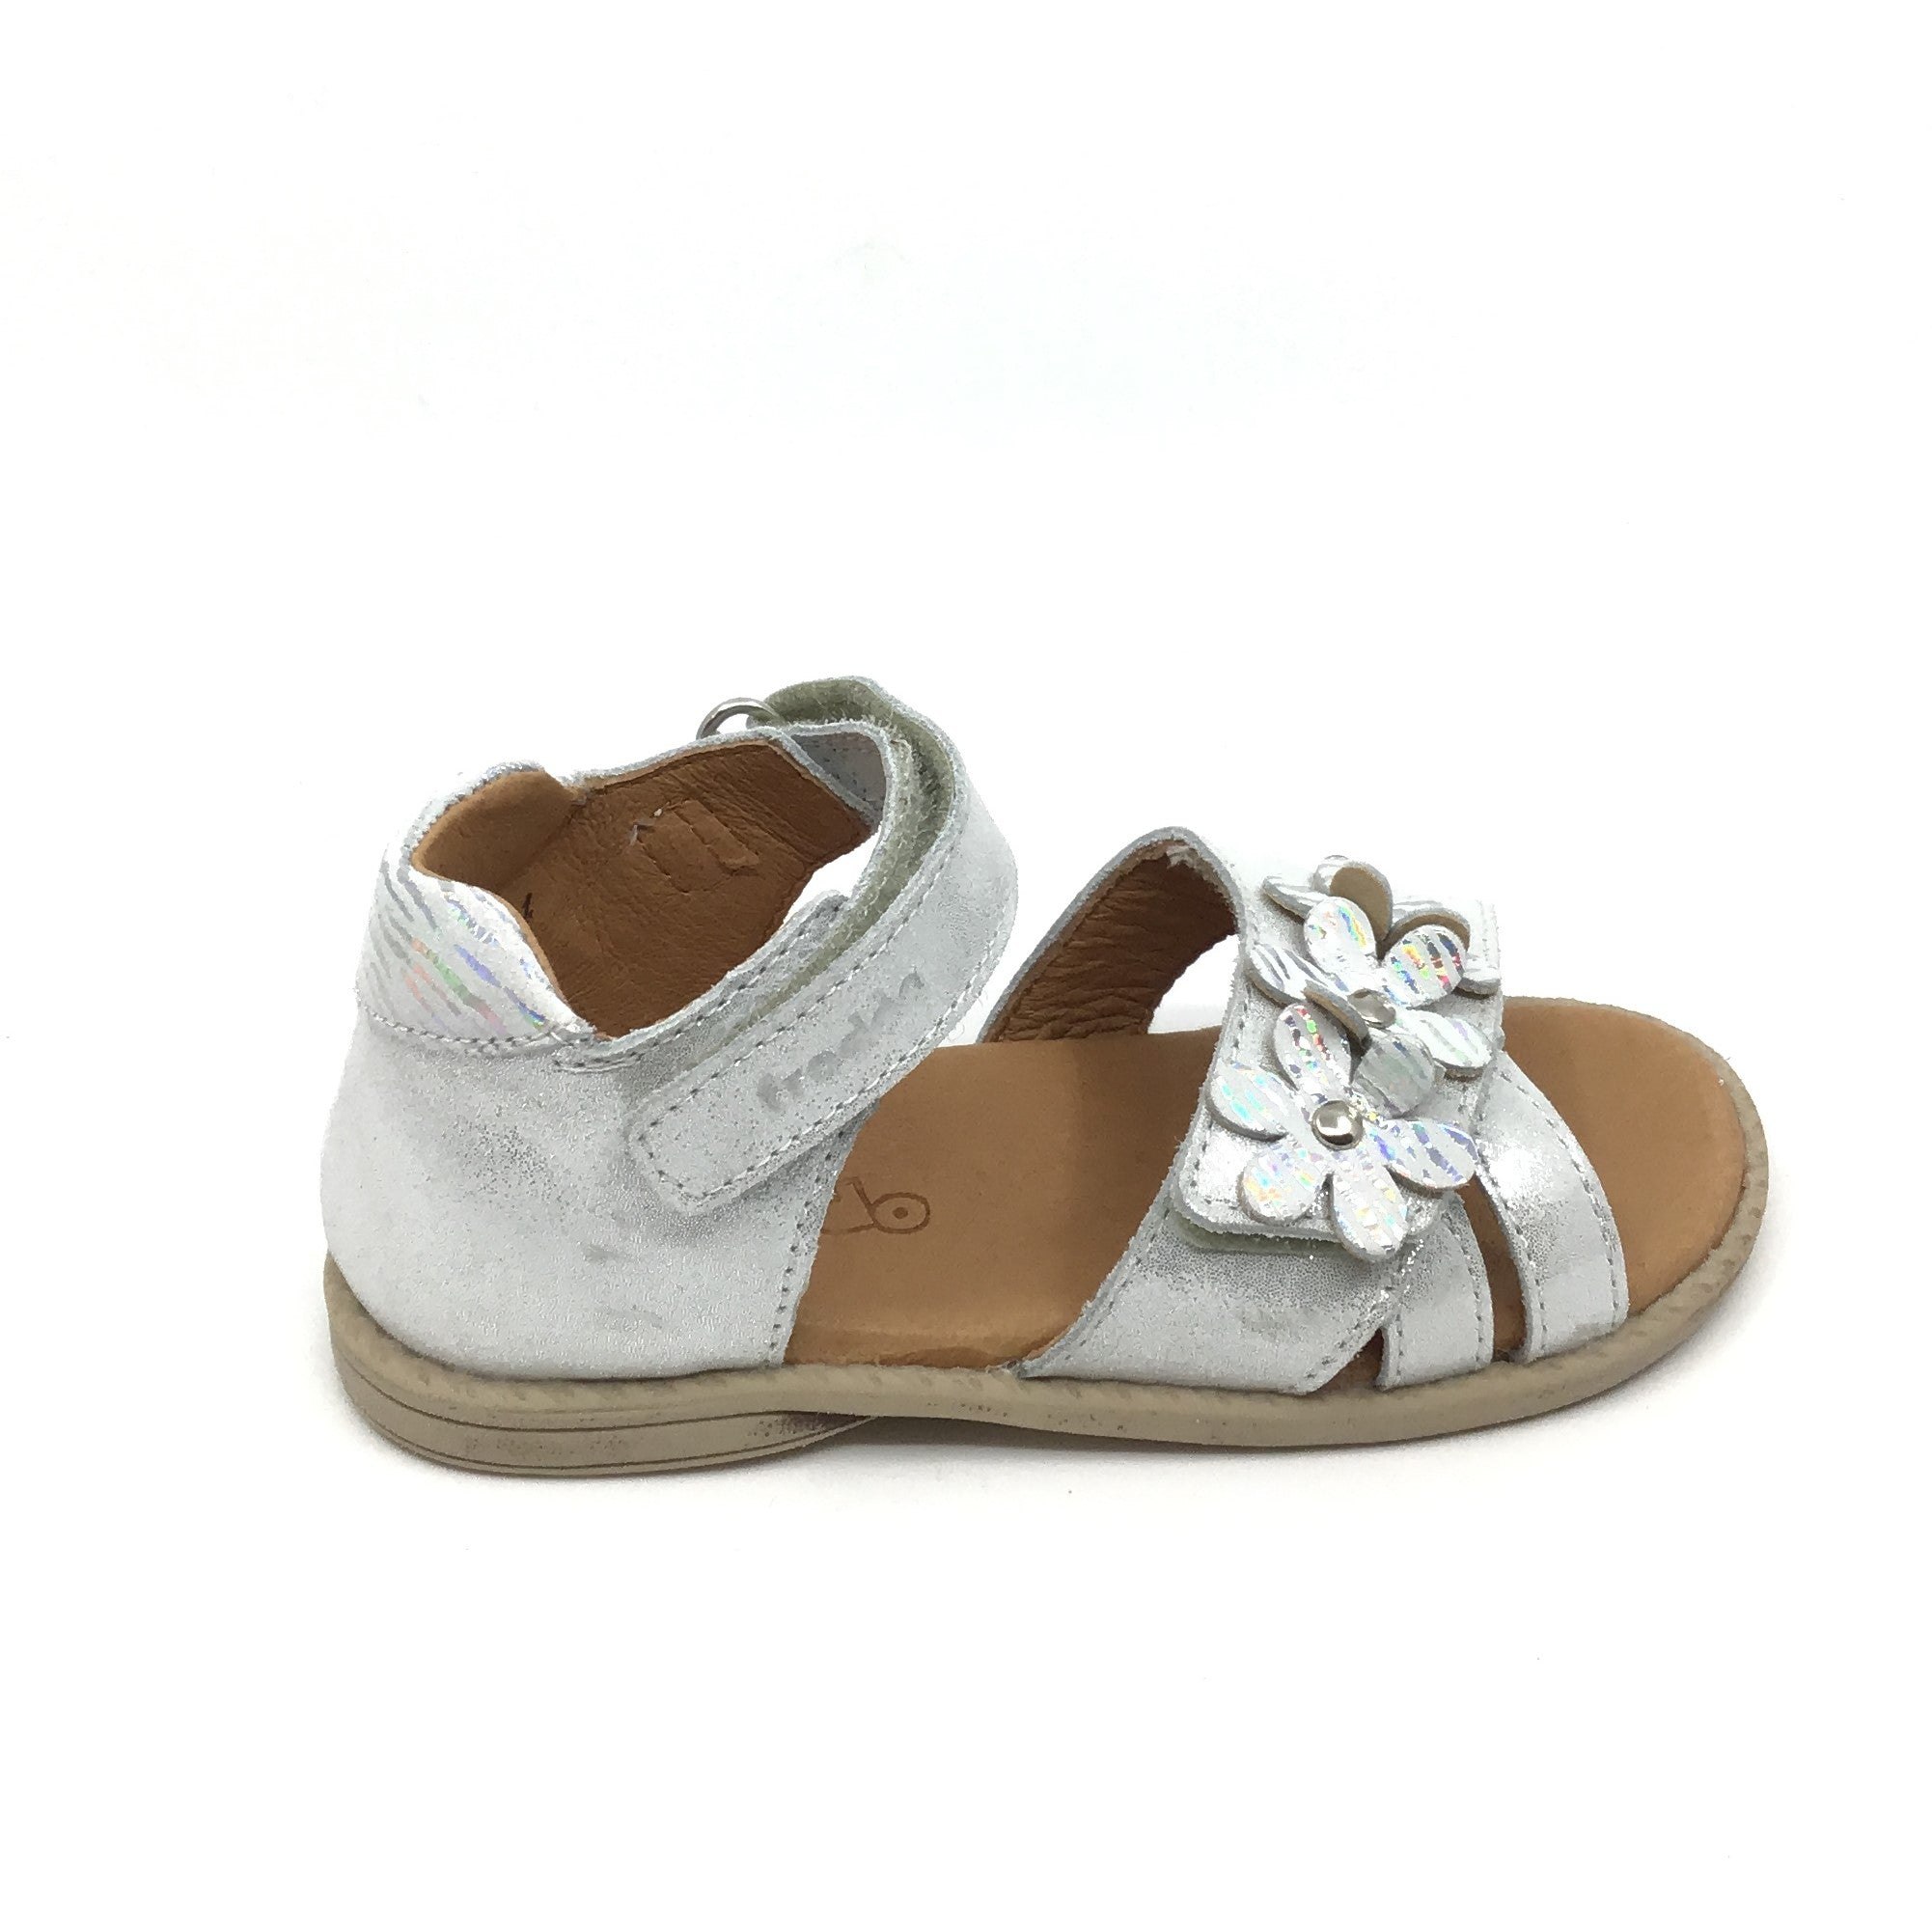 Froddo White Velcro Sandal with Silver and White Flowers